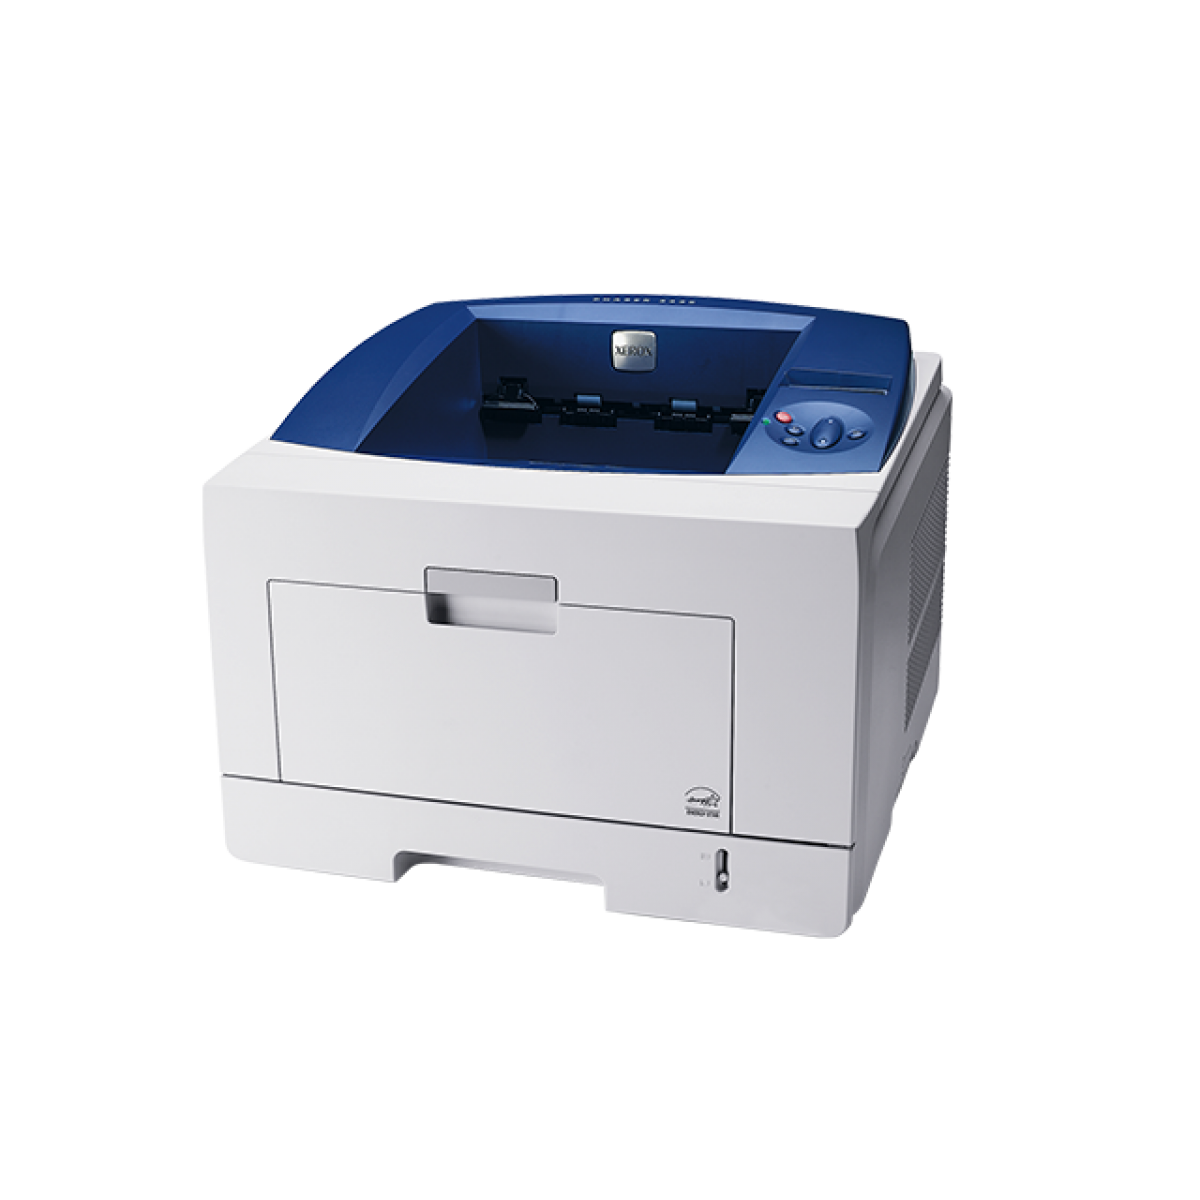 Index Of Image Cache Catalog Printer Fuji Xerox Docuprint M115w